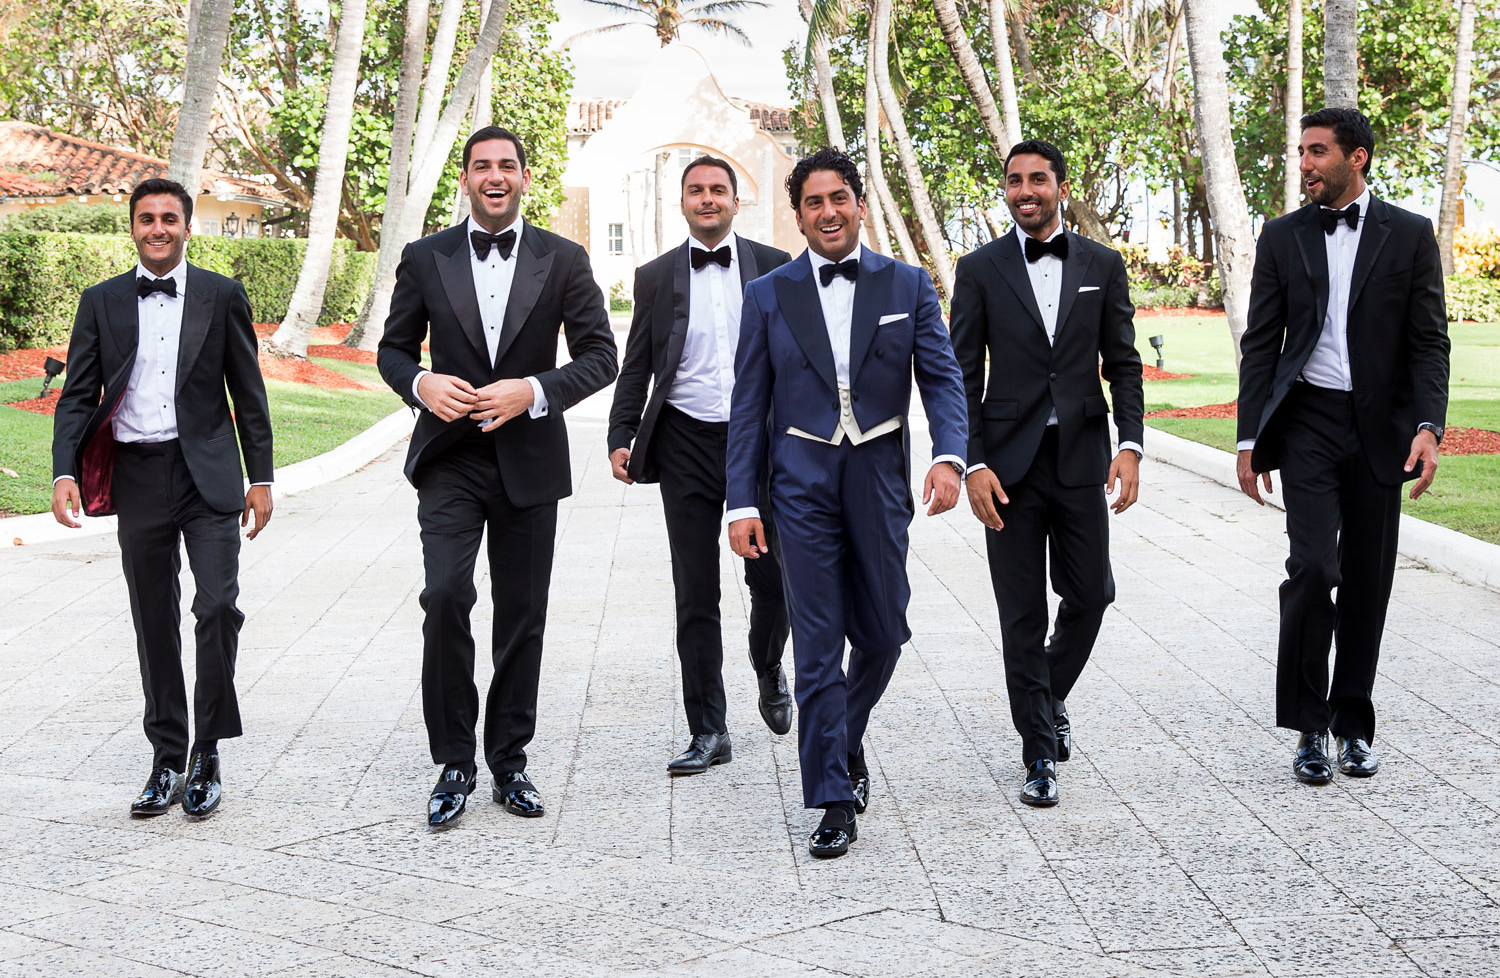 group of groomsmen walking pathway together, style tips for groomsmen